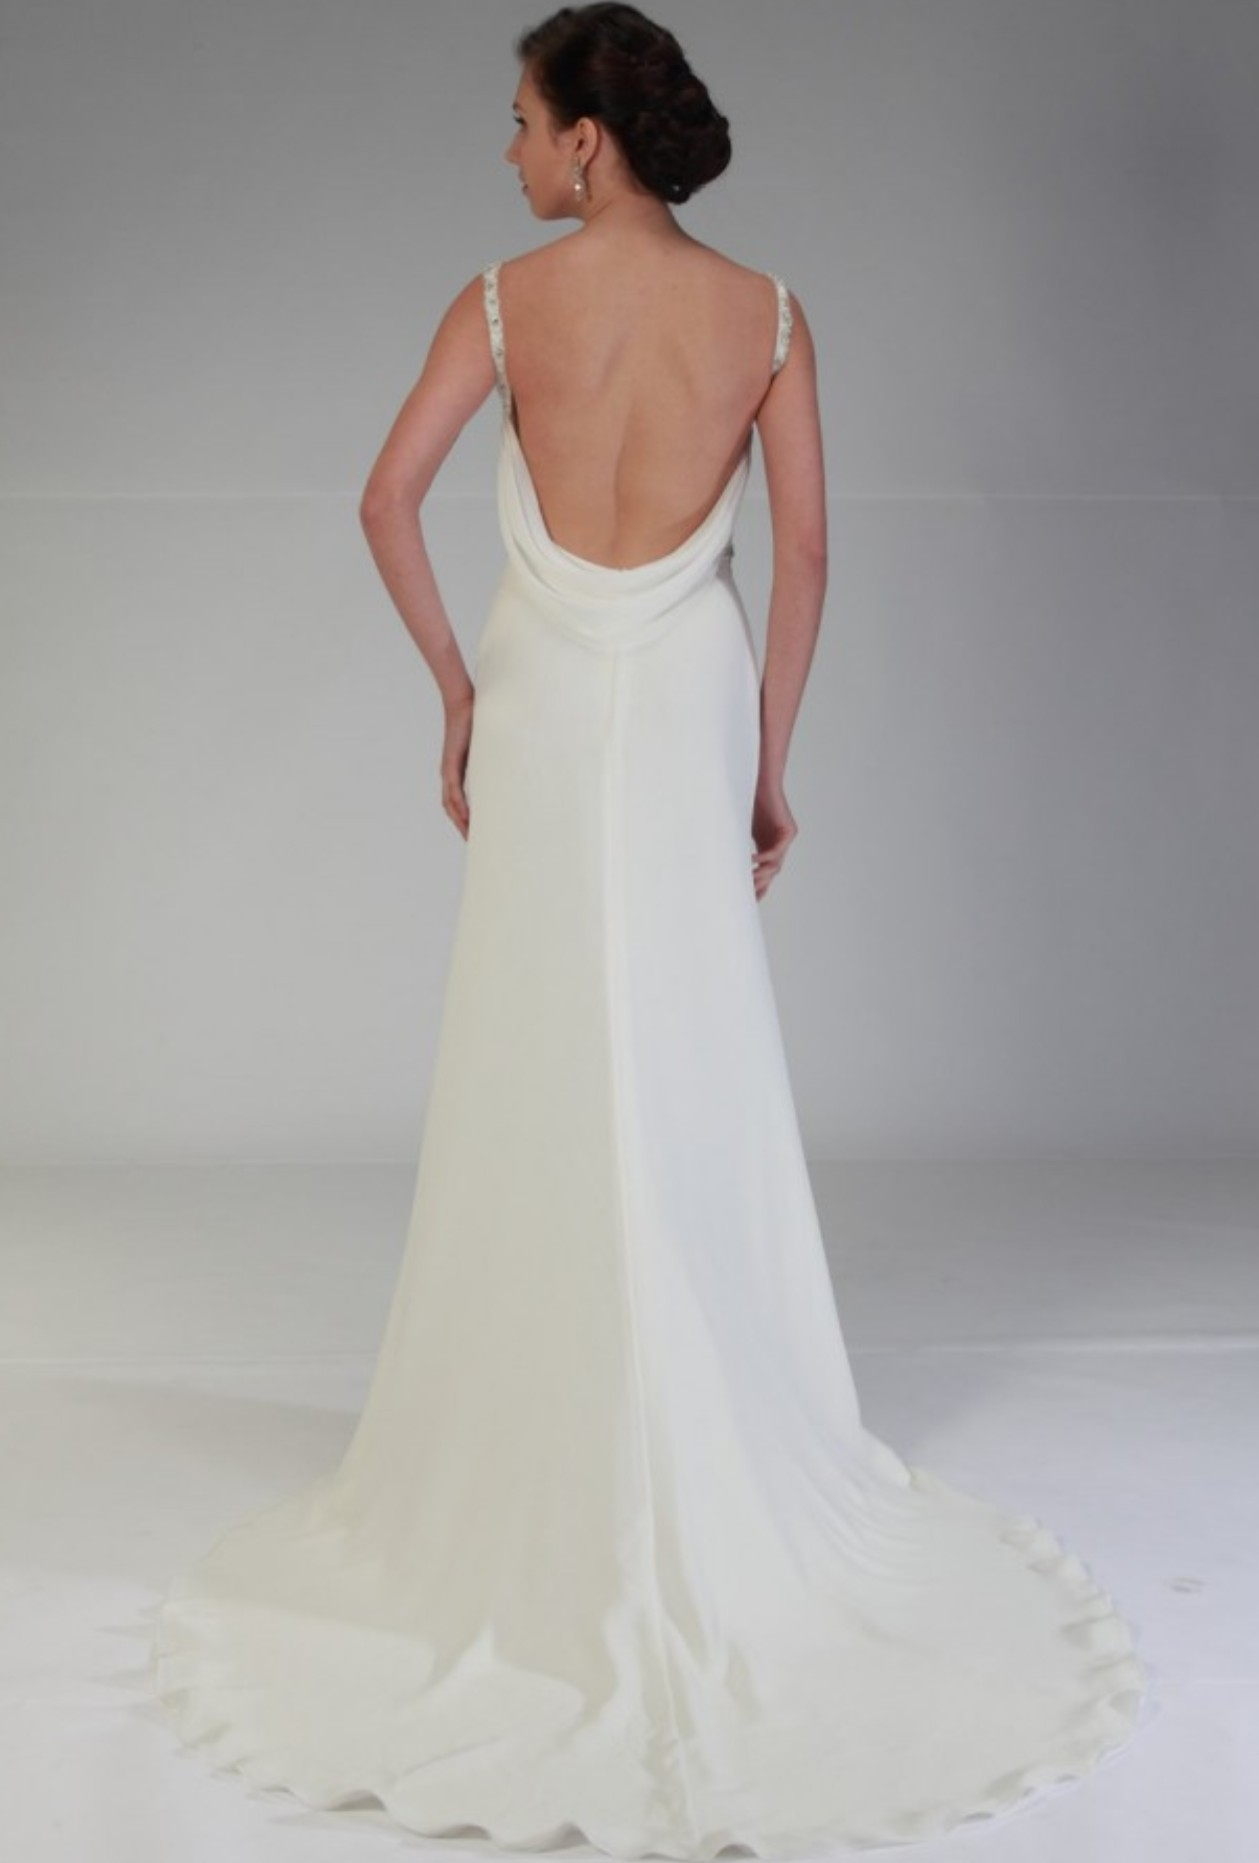 Venus bridal pa9189 new wedding dress on sale 65 off for Wedding dresses for brides over 65